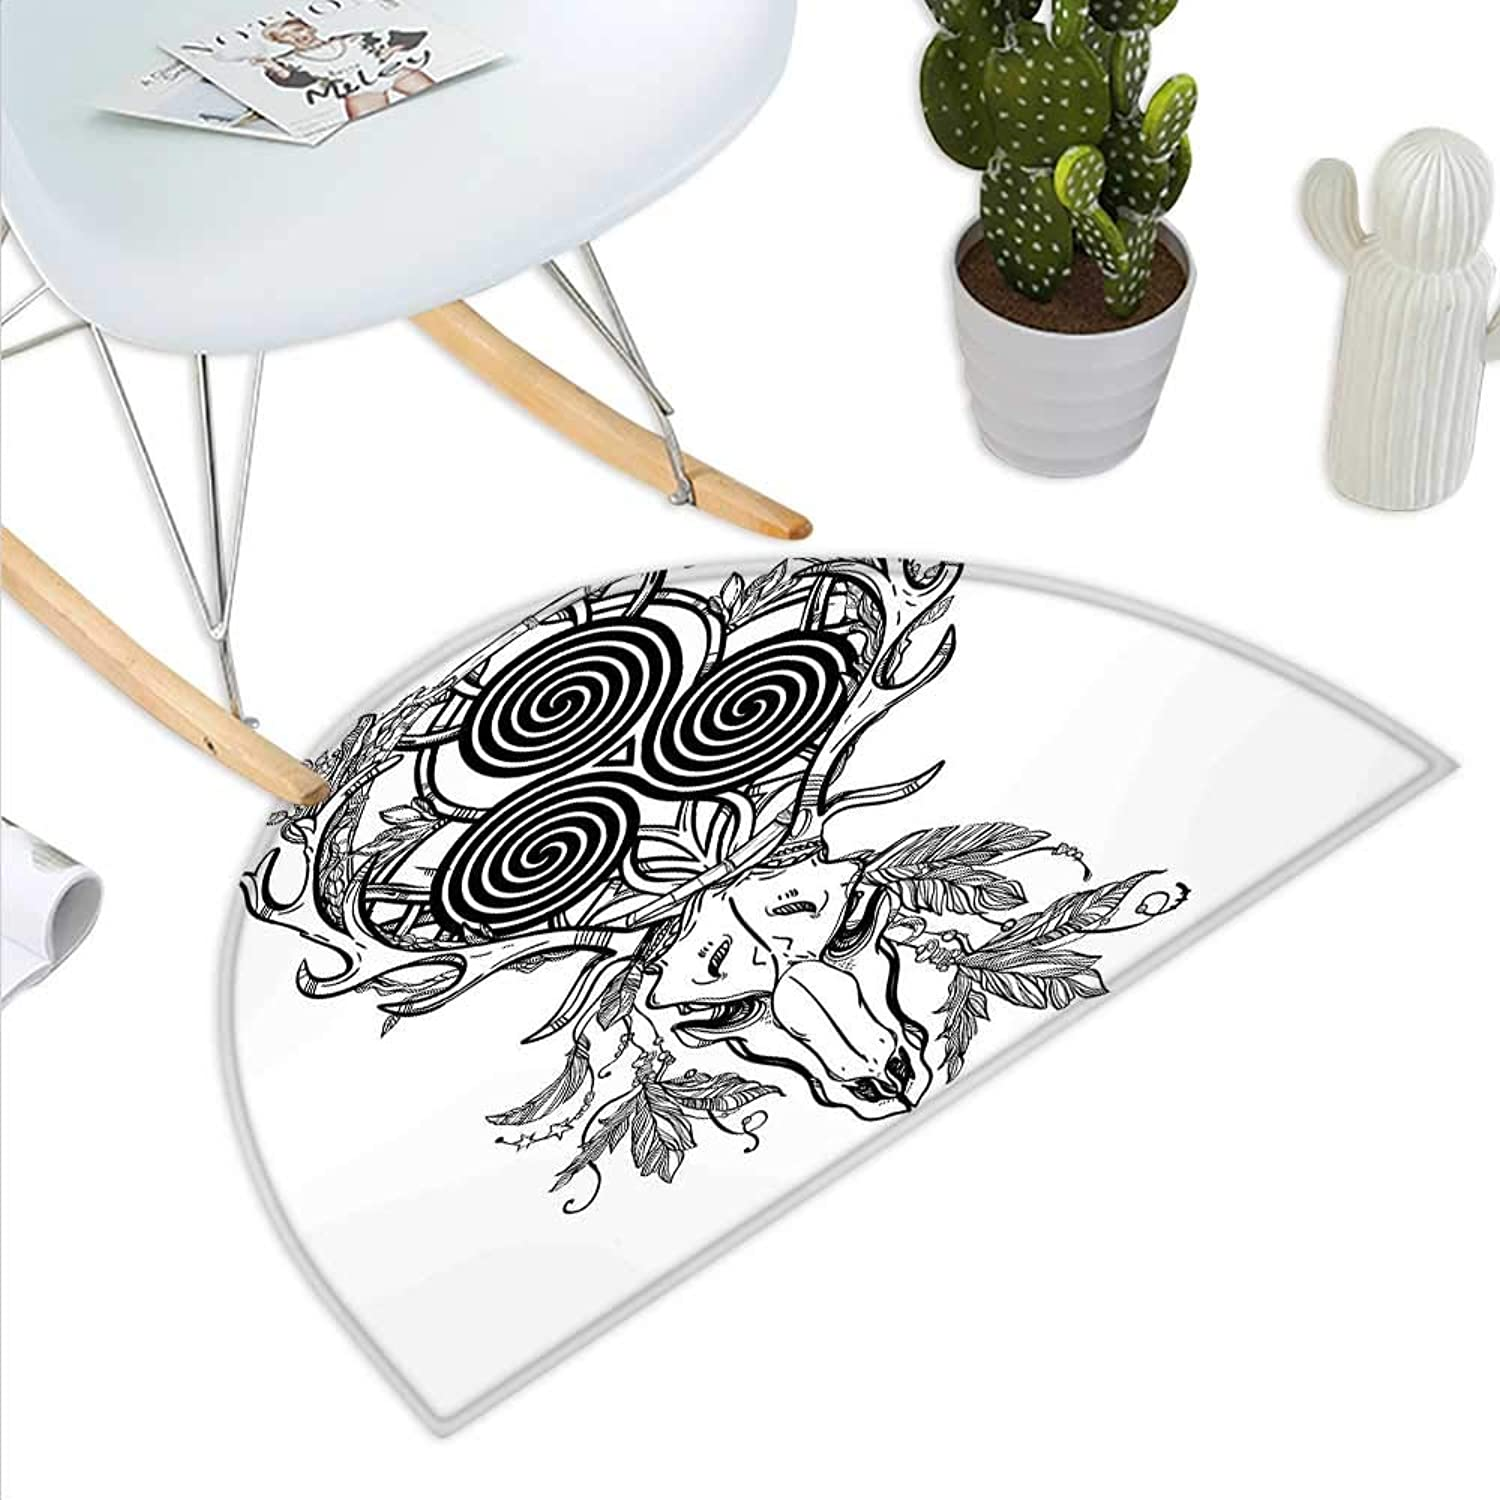 Celtic Semicircle Doormat Deer Skull with Native American Ethnic Feather and Celtic Spiral on The Horns Boho Halfmoon doormats H 39.3  xD 59  Black White